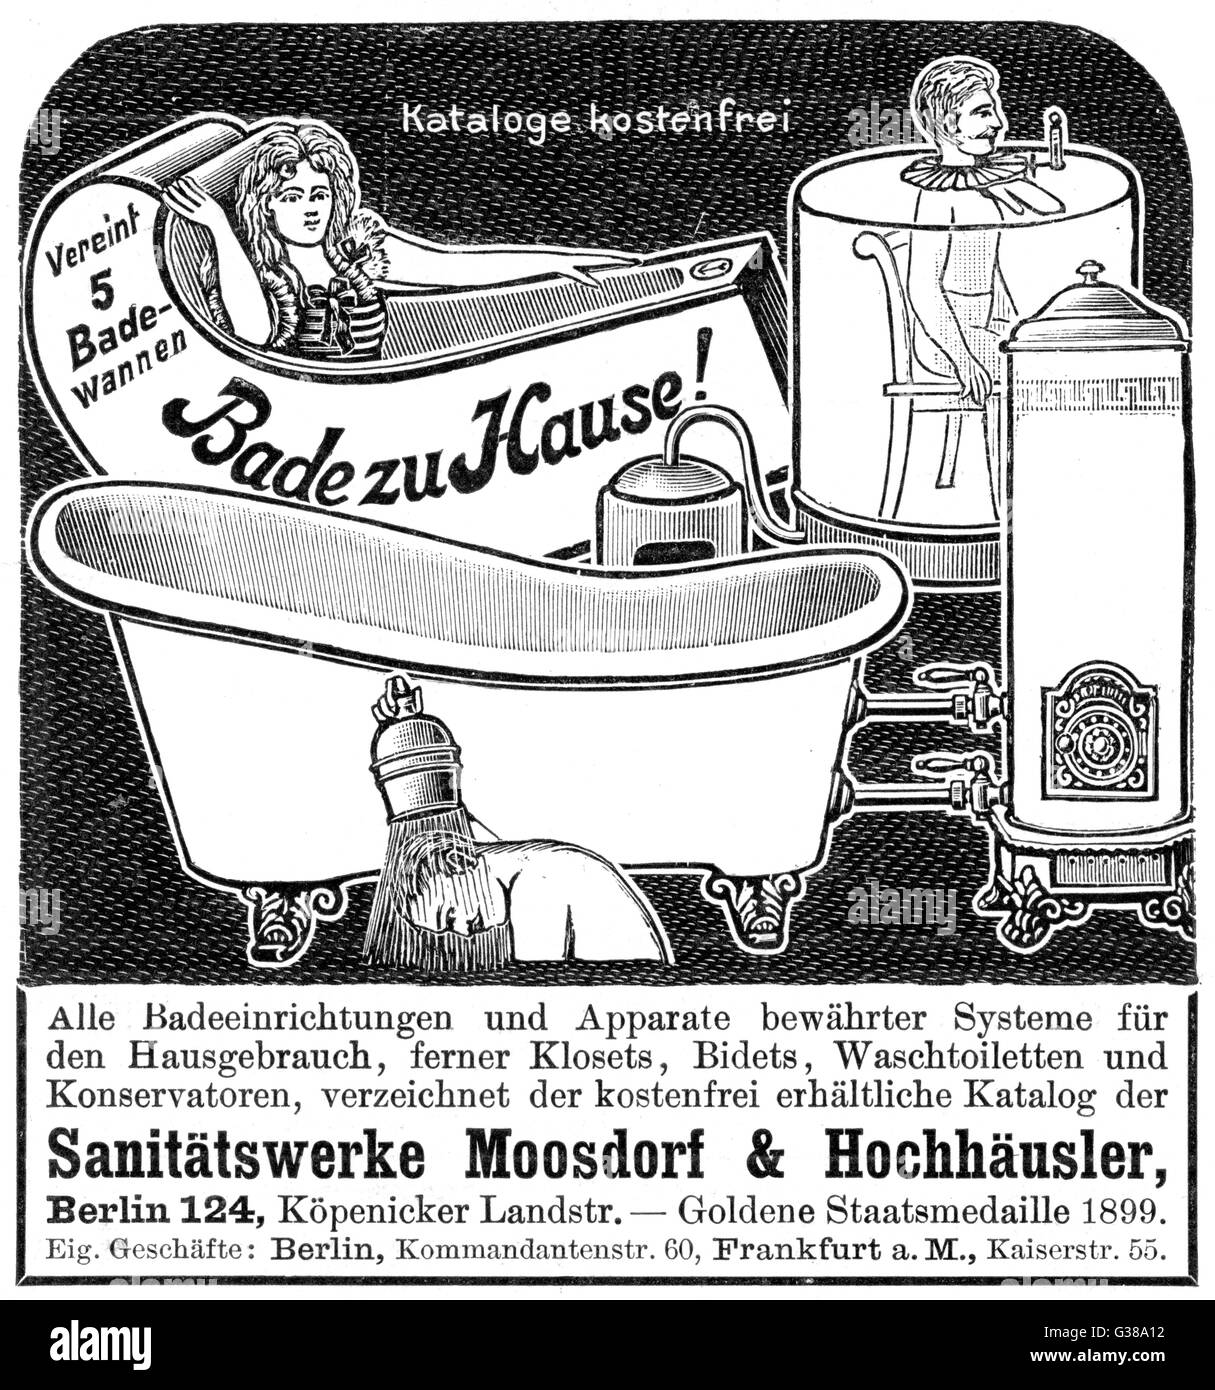 Advertisement for various  bathing devices          Date: 1900 - Stock Image